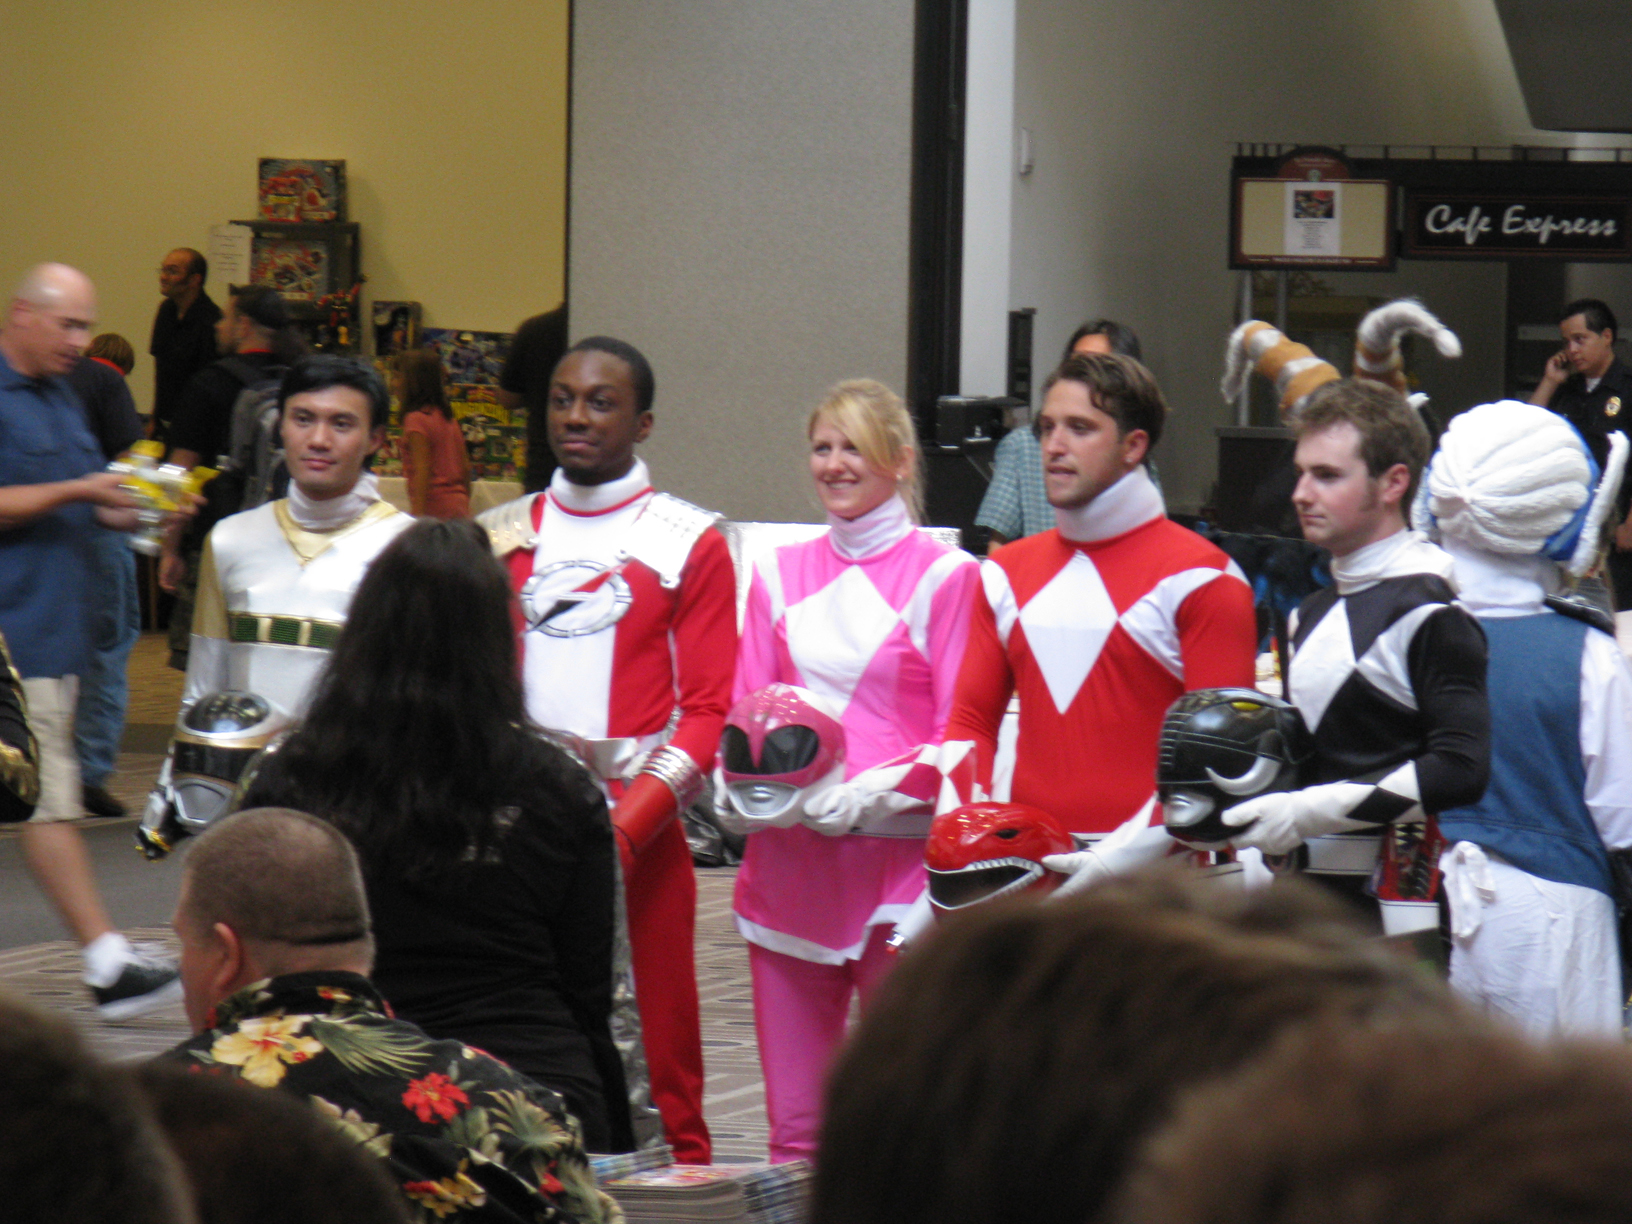 Power-Morphicon-Power-Ranger-Faces.JPG